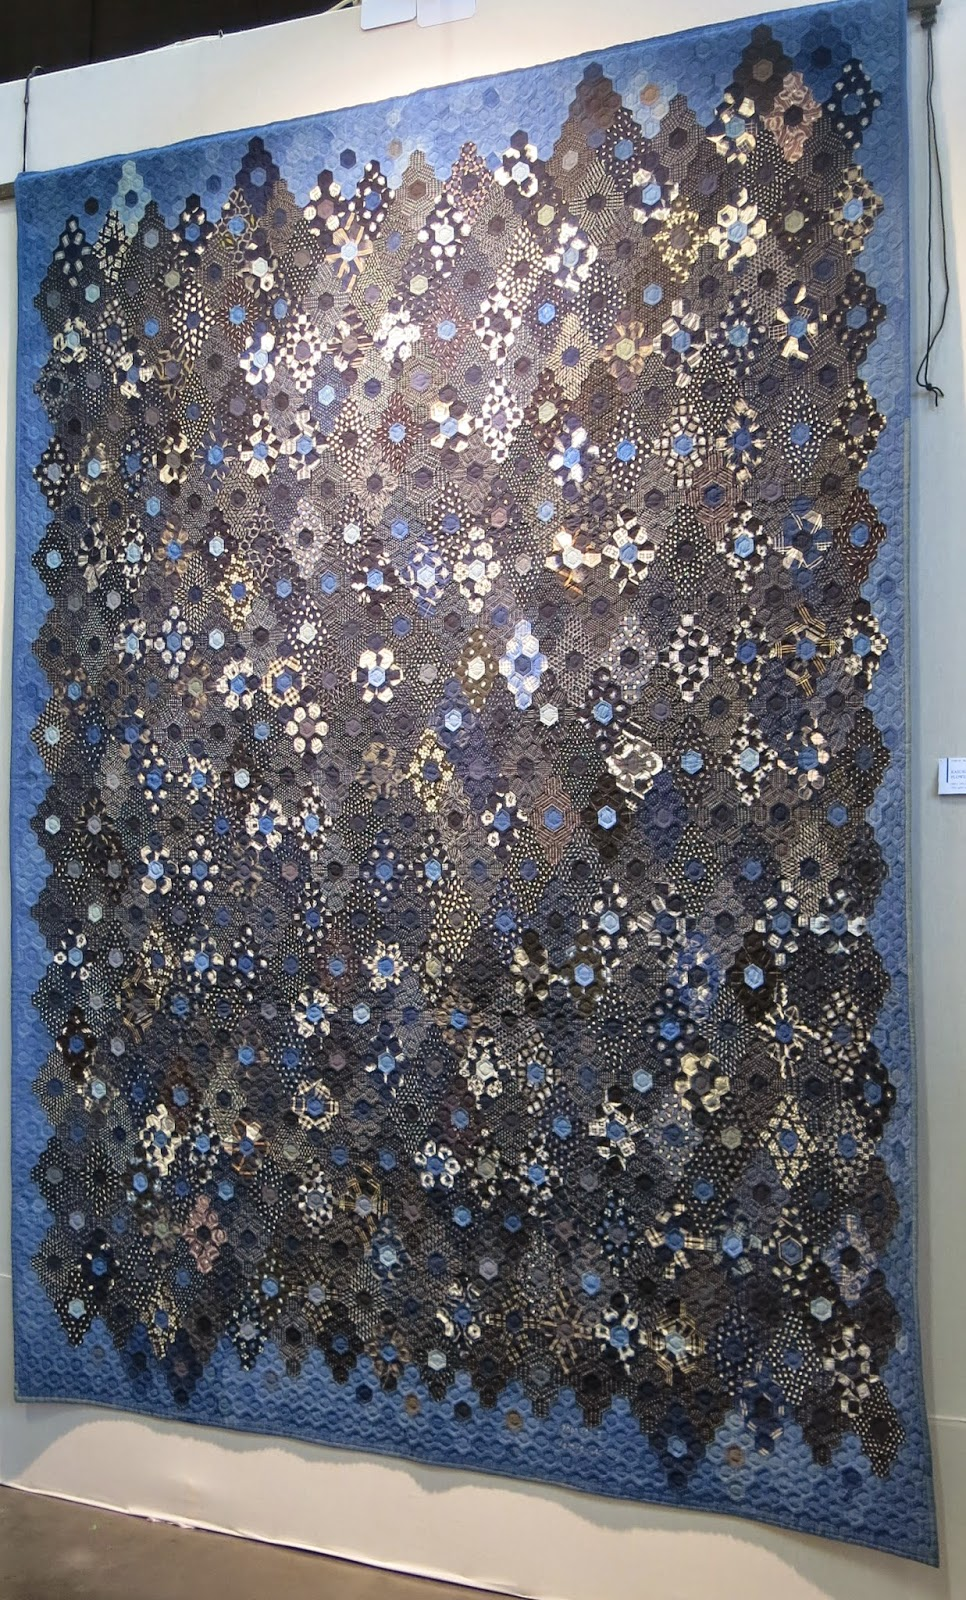 Quilt exhibition in Nantes - Tomie Nagano's indigo quilts